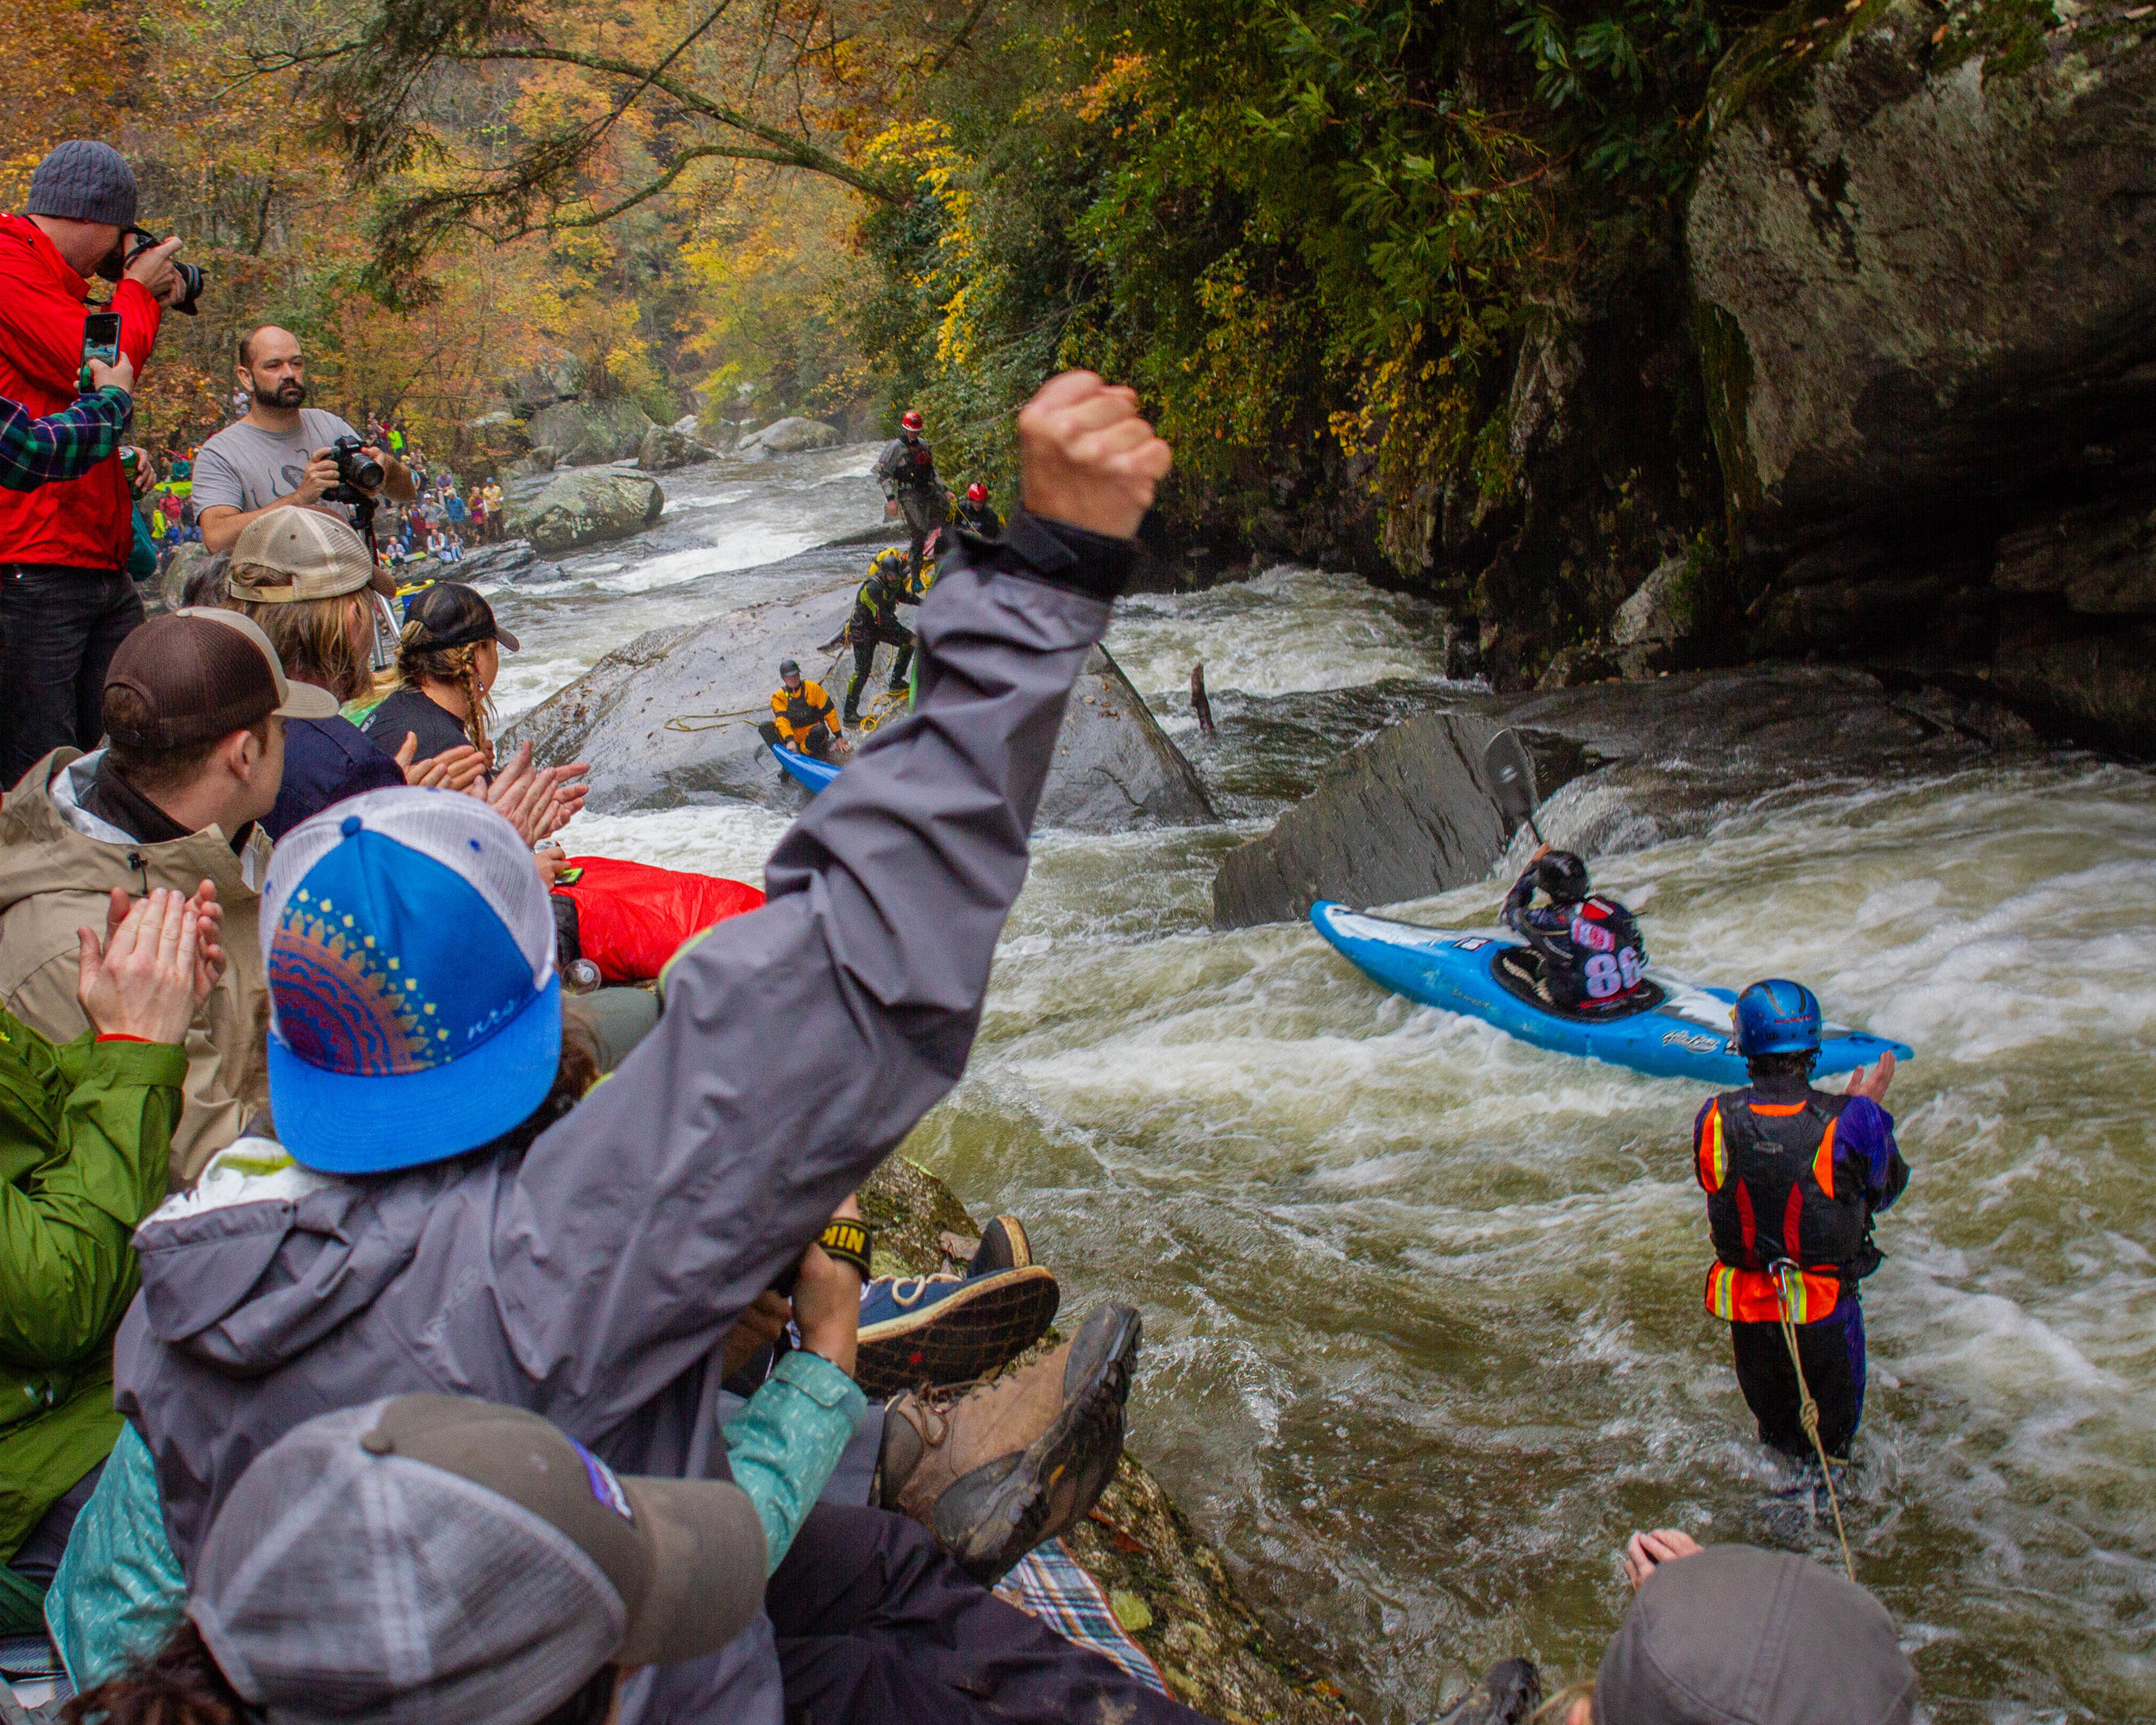 Green Race spectators and safety cheer Rashid Clifton on as he paddles the last difficult sections before the finish. Saluda, North Carolina (Photo credit: Joey Redmond).